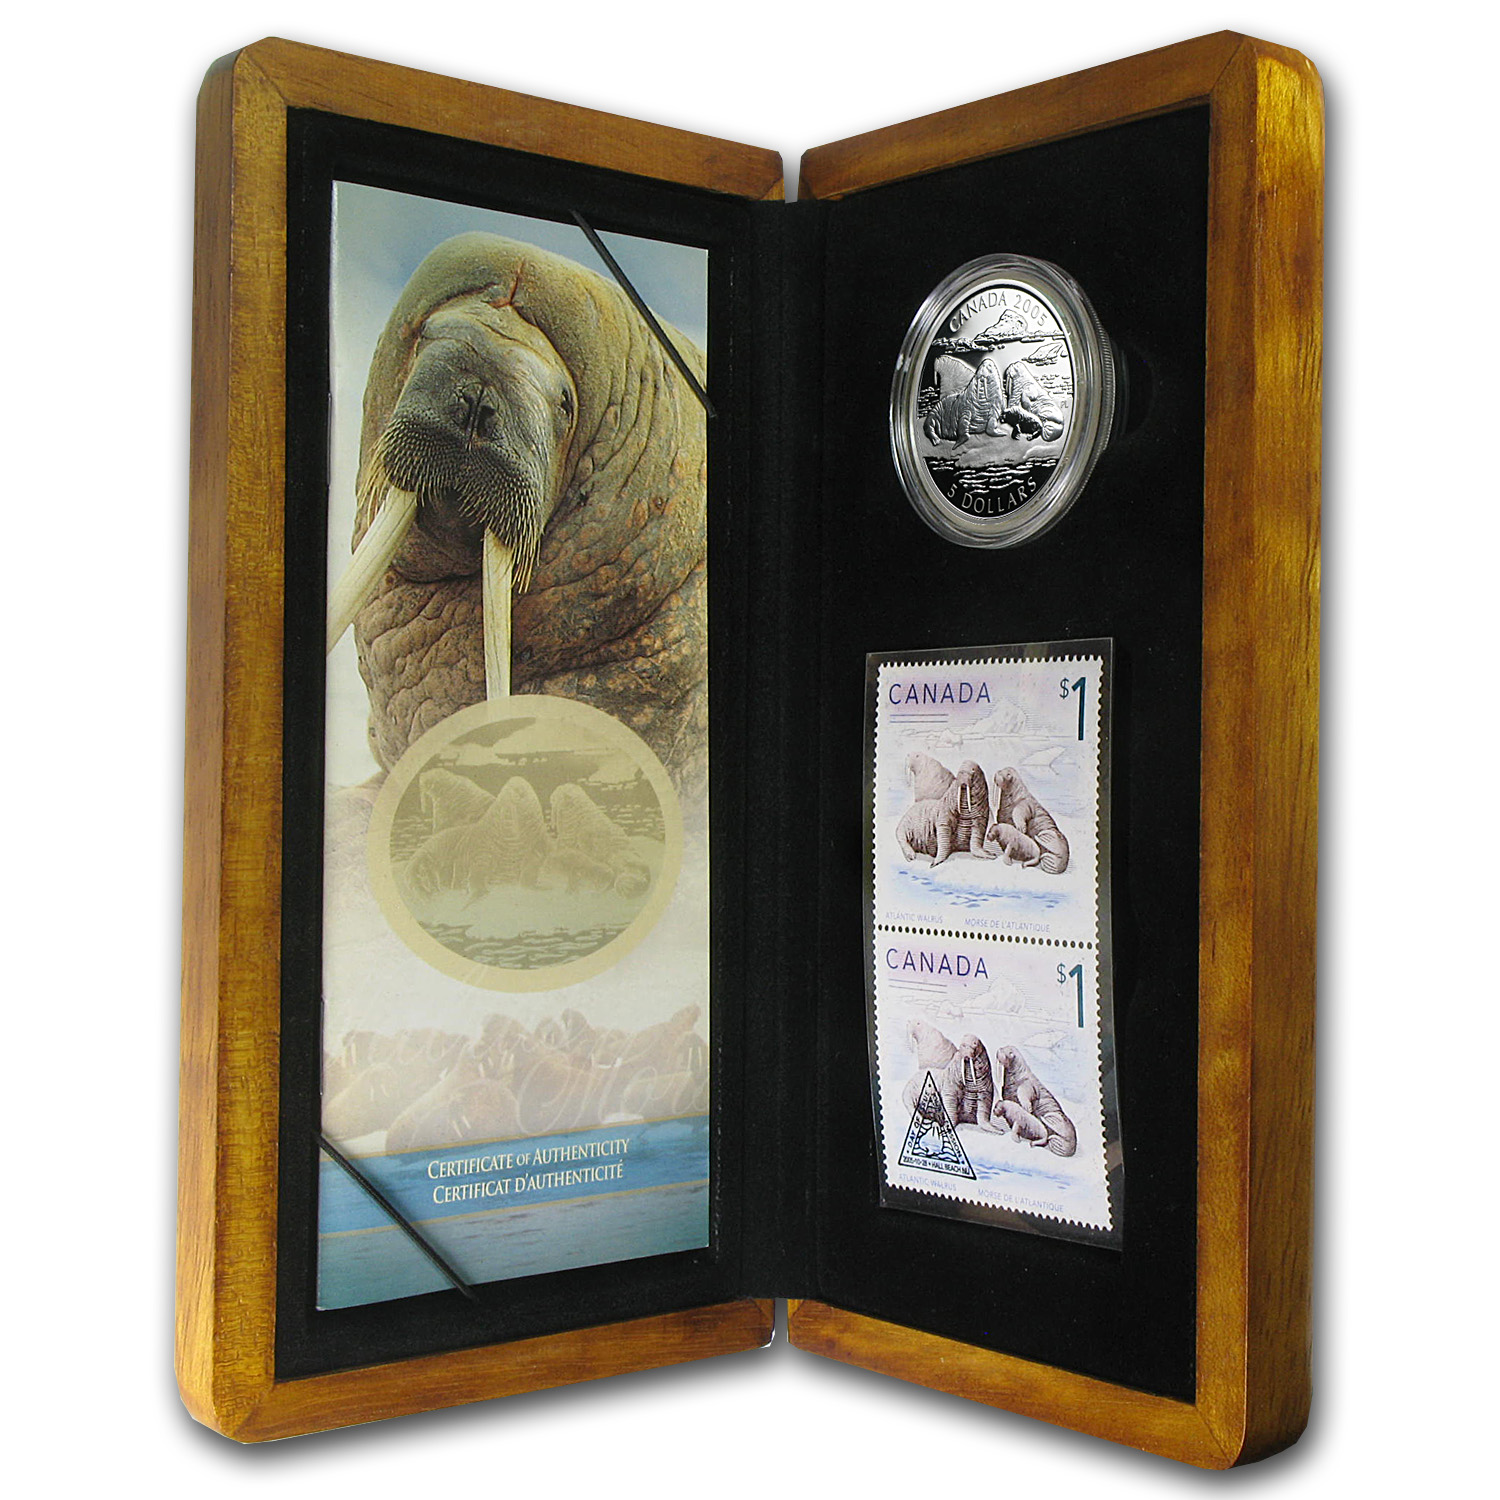 2005 Silver Canadian Walrus and Calf Coin and Stamp Set